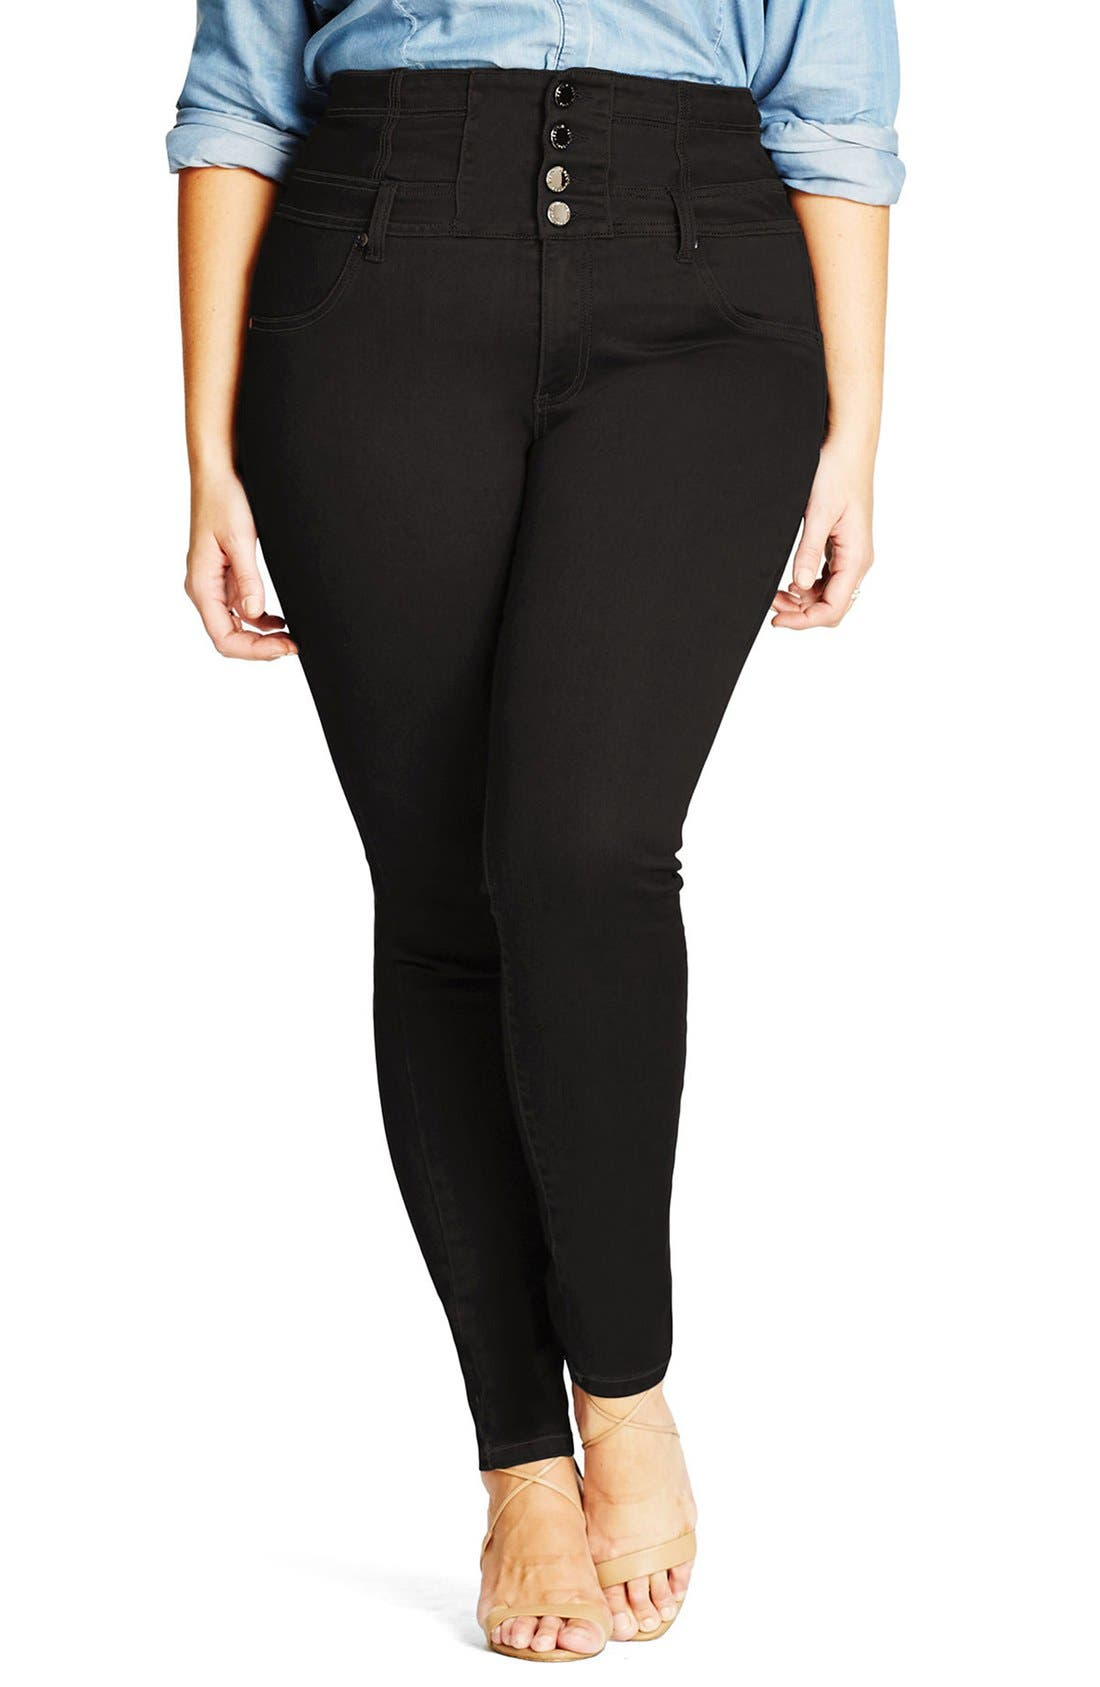 Main Image - City Chic 'Harley' Corset Waist Skinny Jeans (Plus Size)